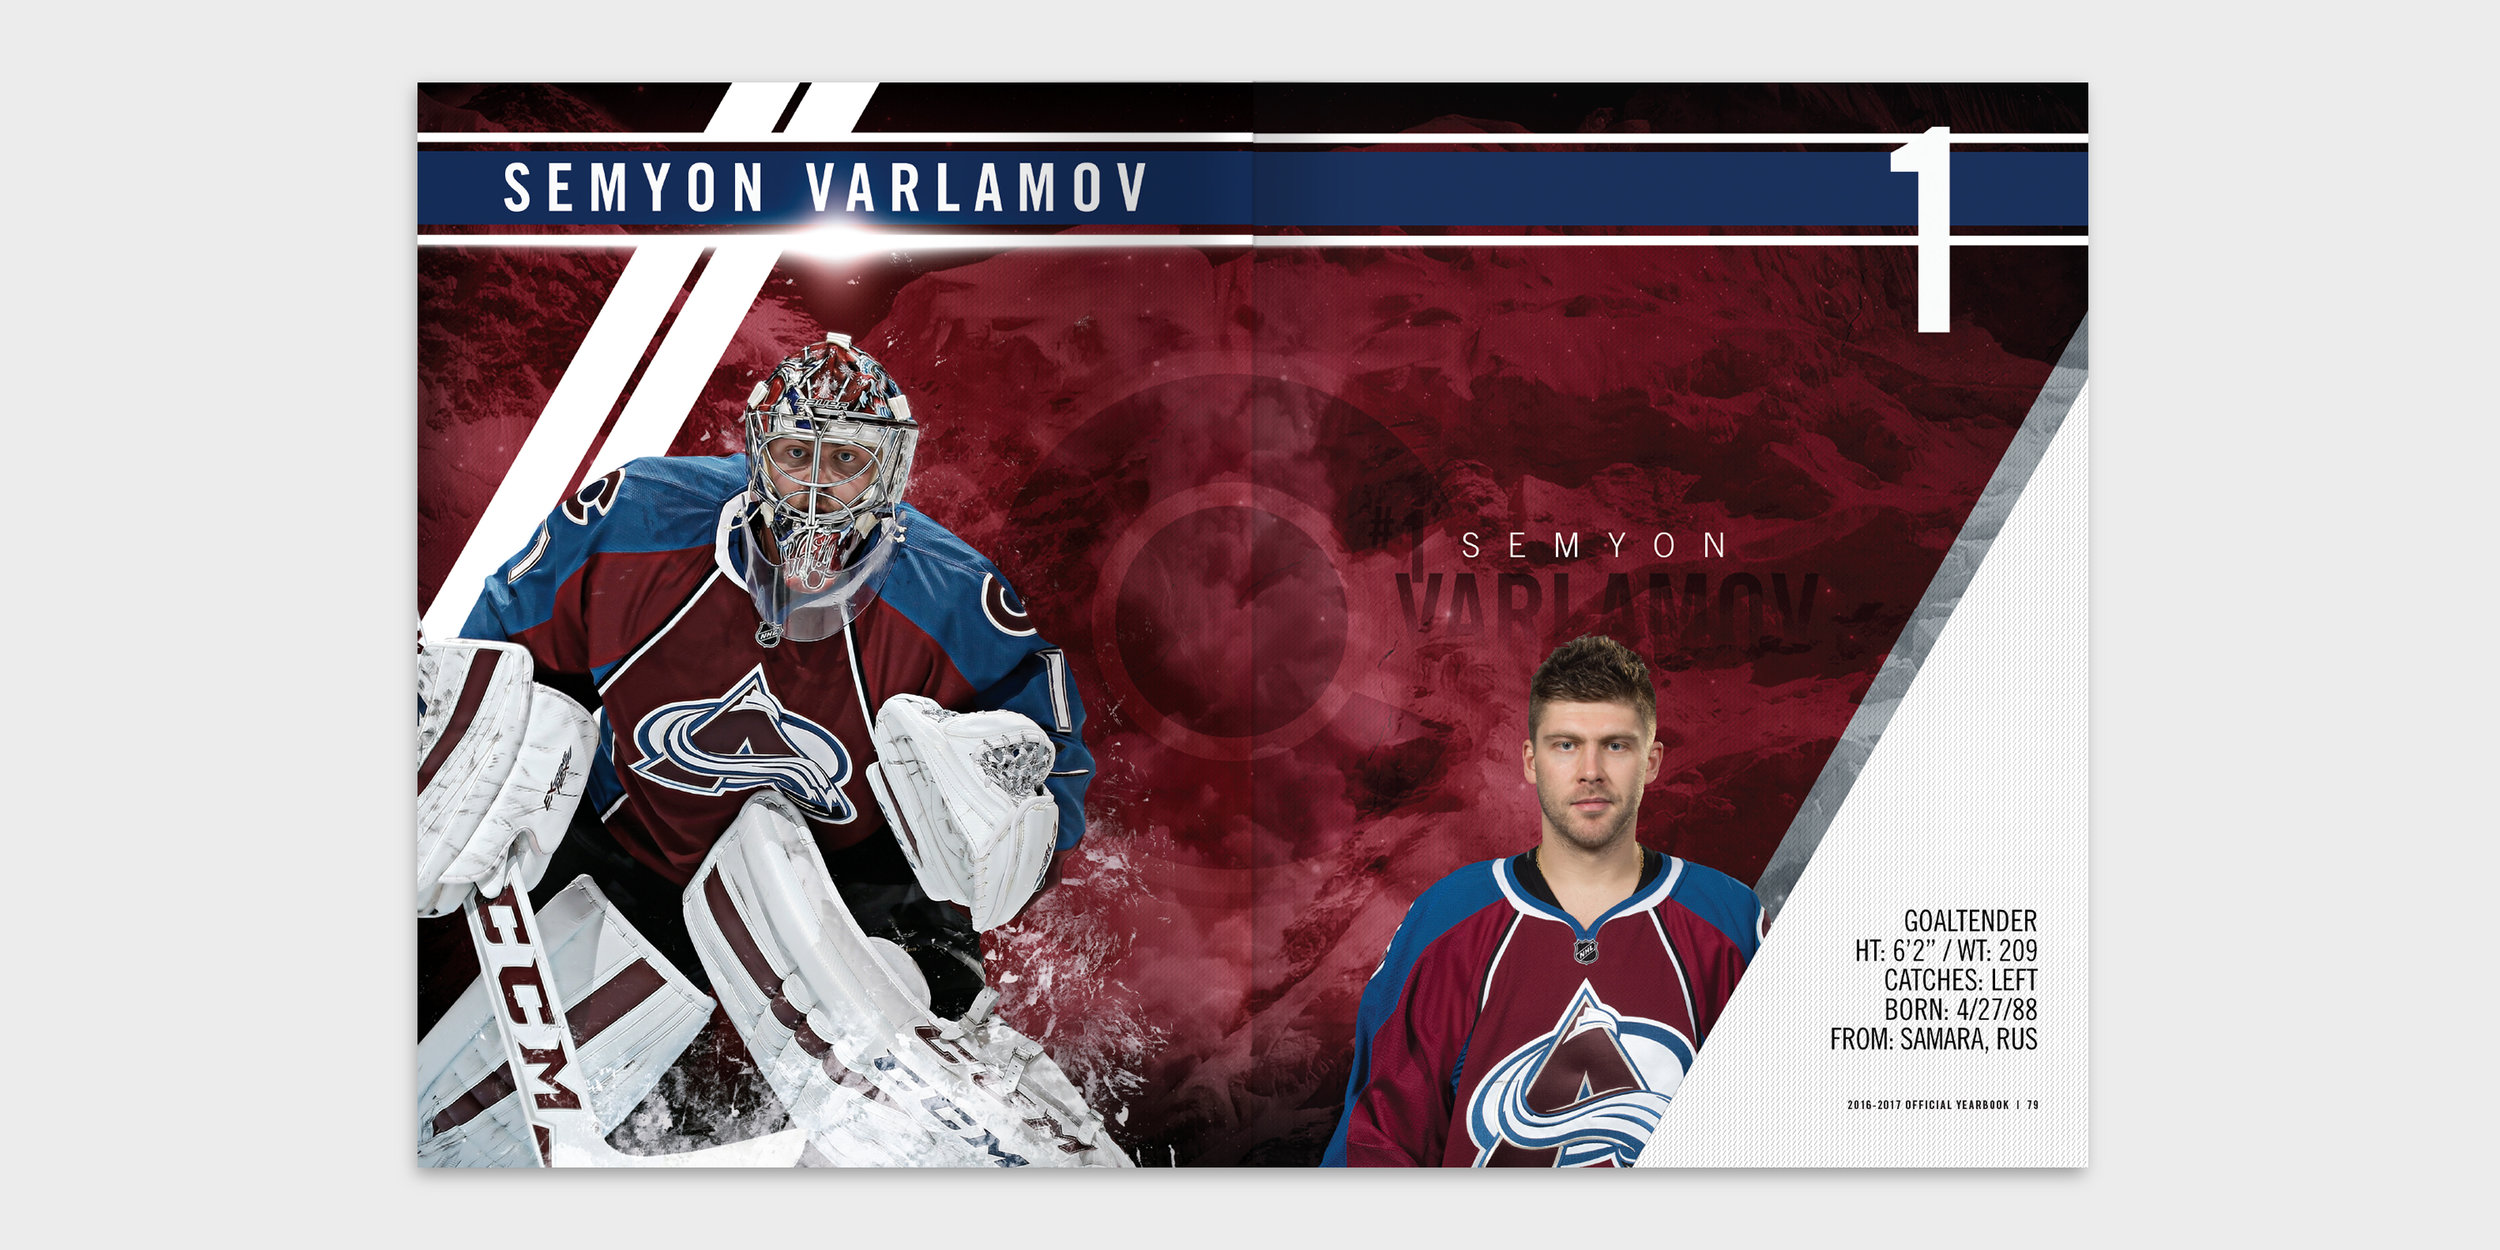 Web_Samples_Avalanche_Varlamov.jpg